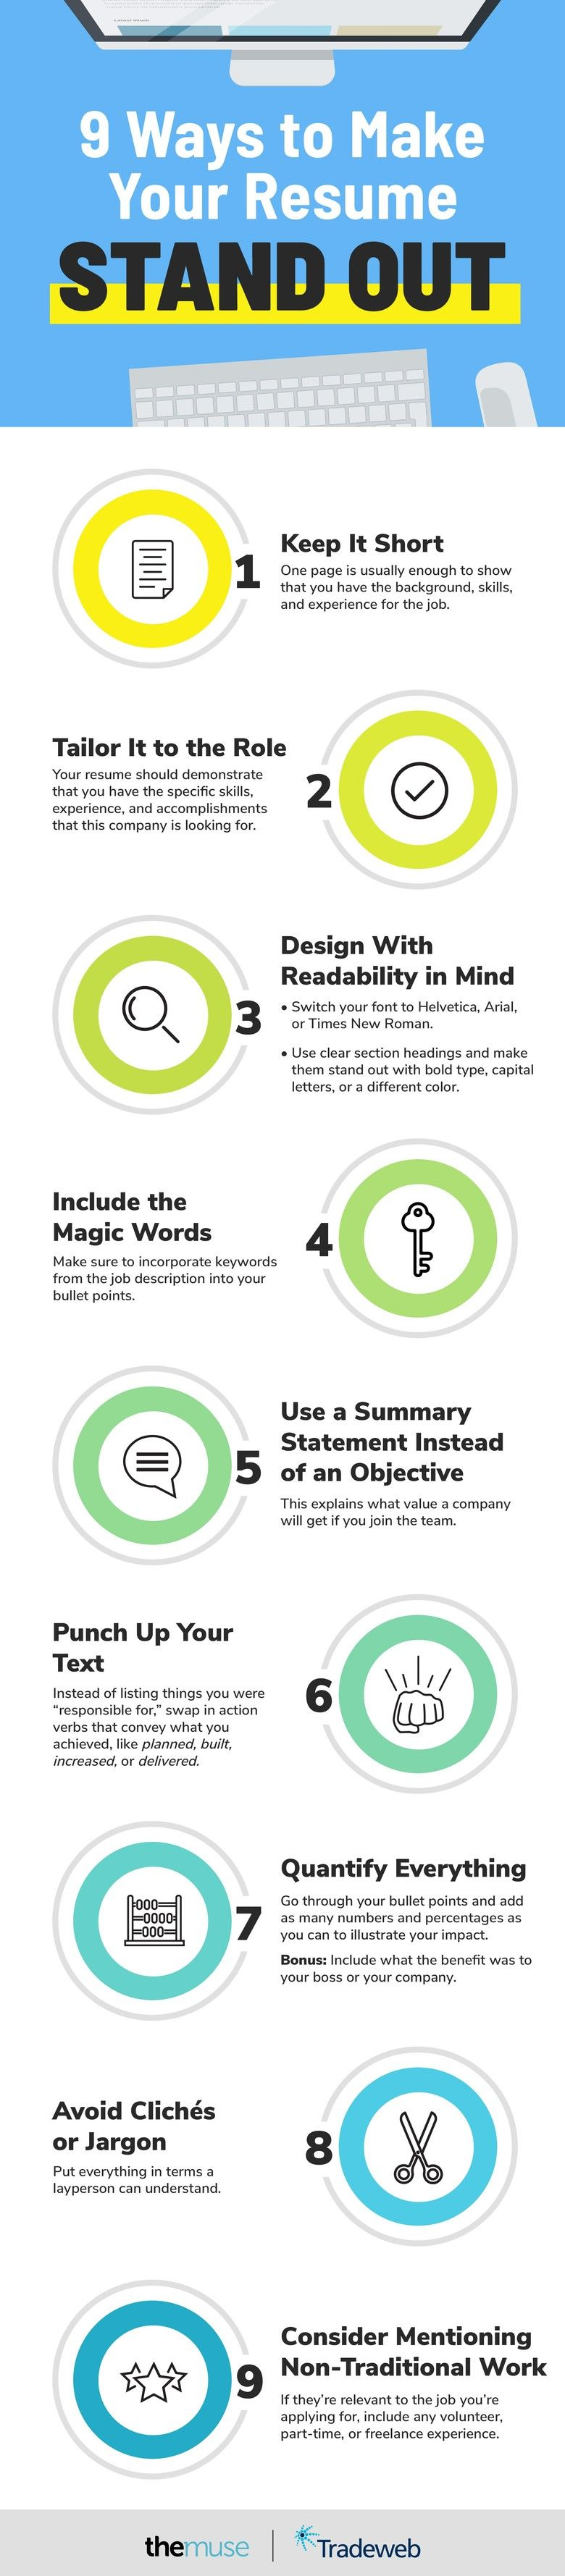 9 ways to make your resume stand out from the crowd